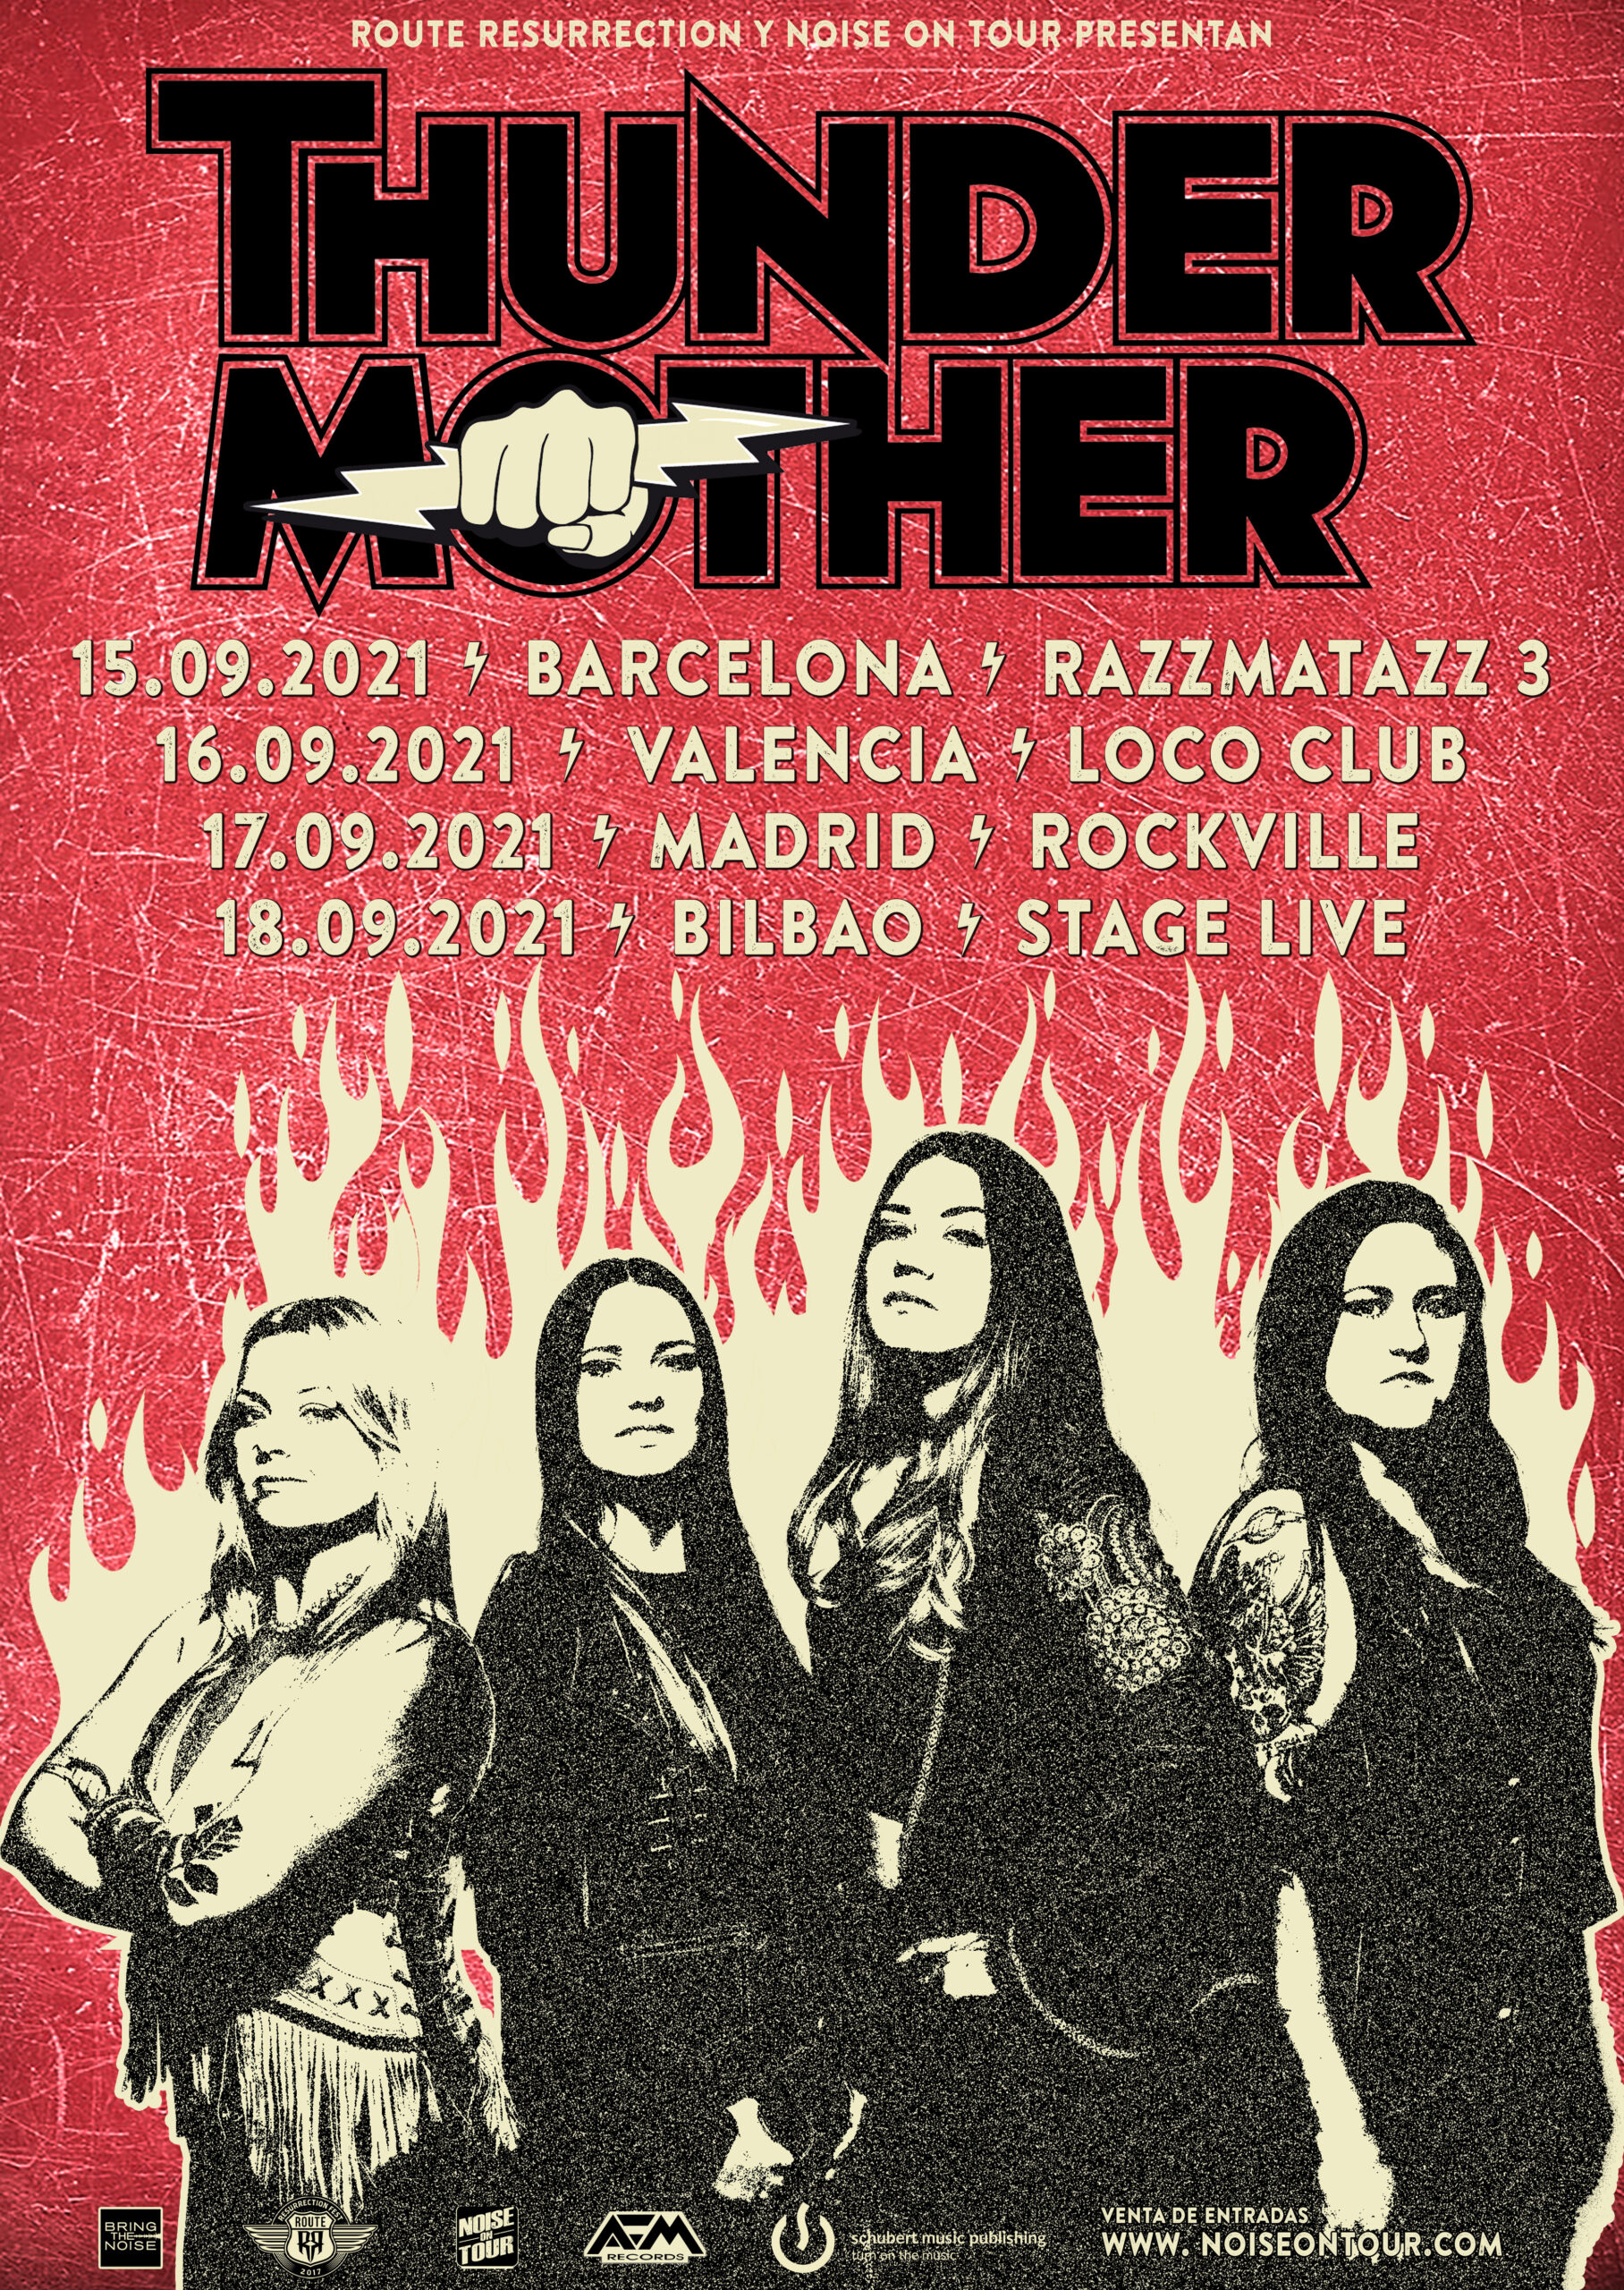 Route Resurrection 2021: Thundermother (Barcelona)